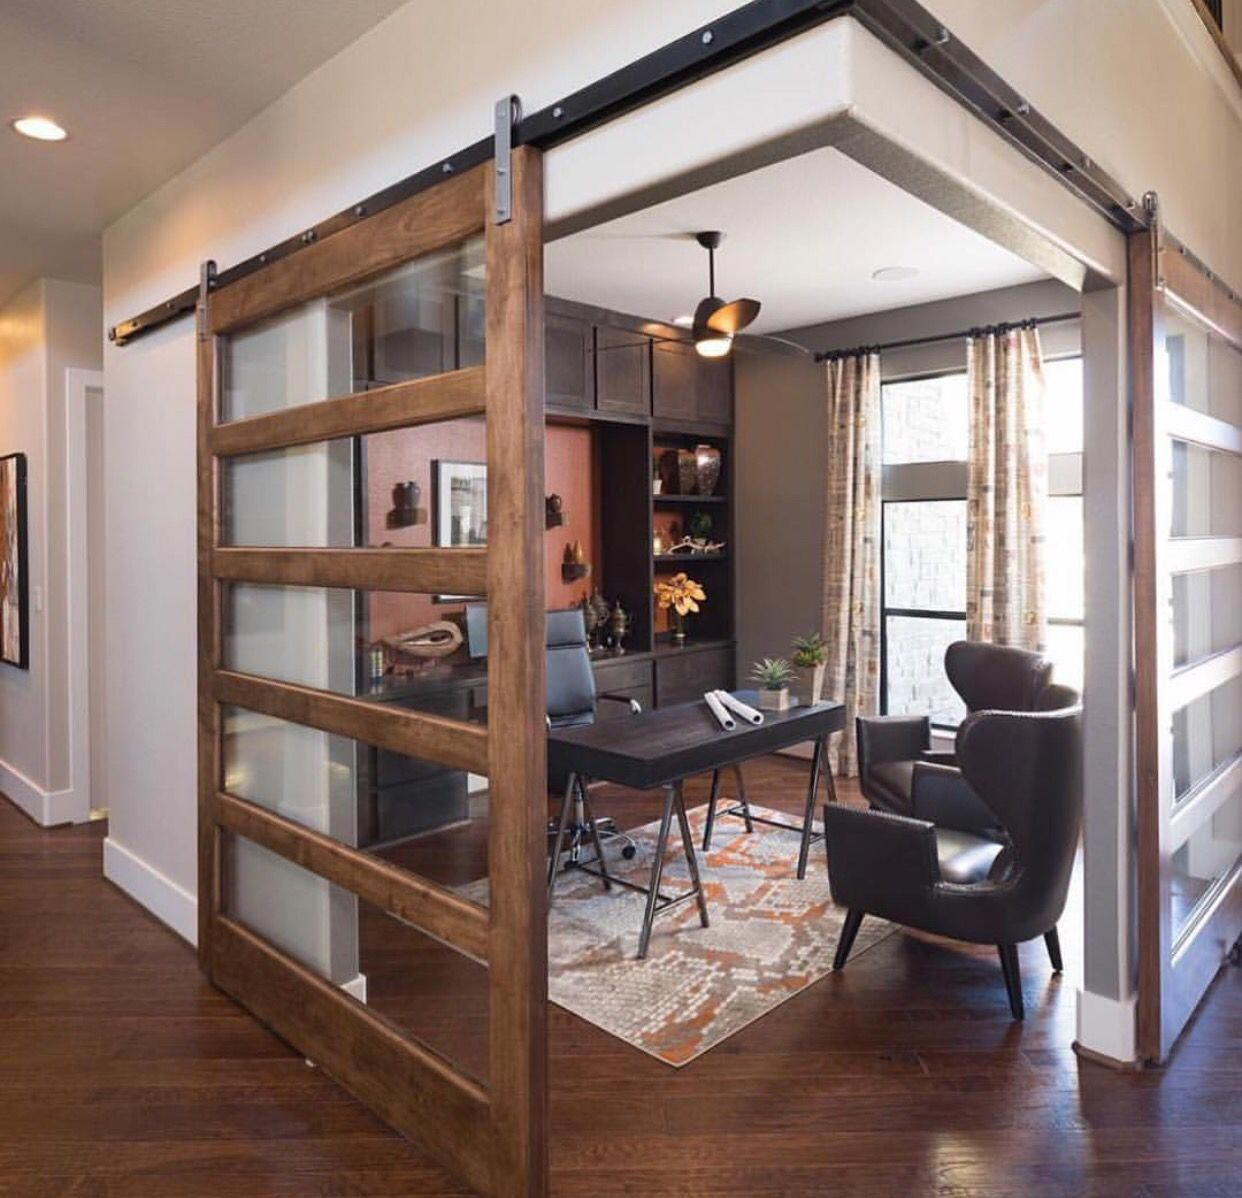 Great idea for closing off an open dining area to create a room